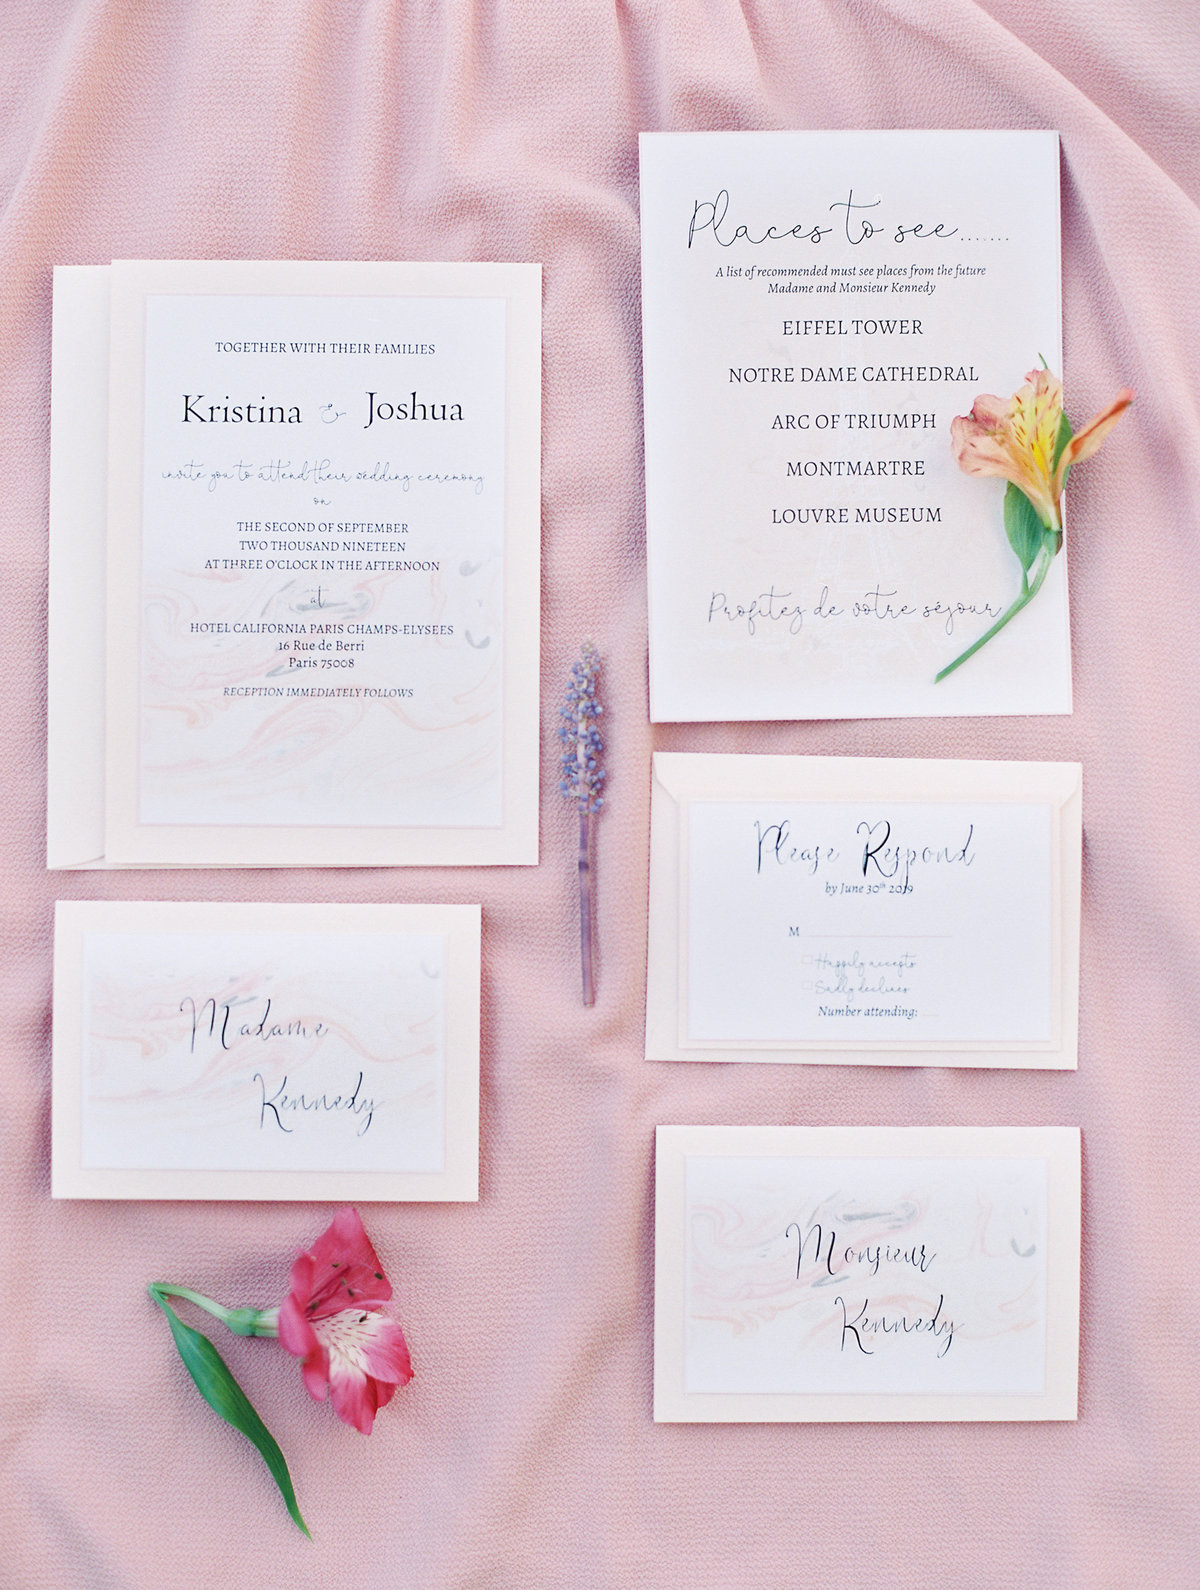 Invitations with matte backing